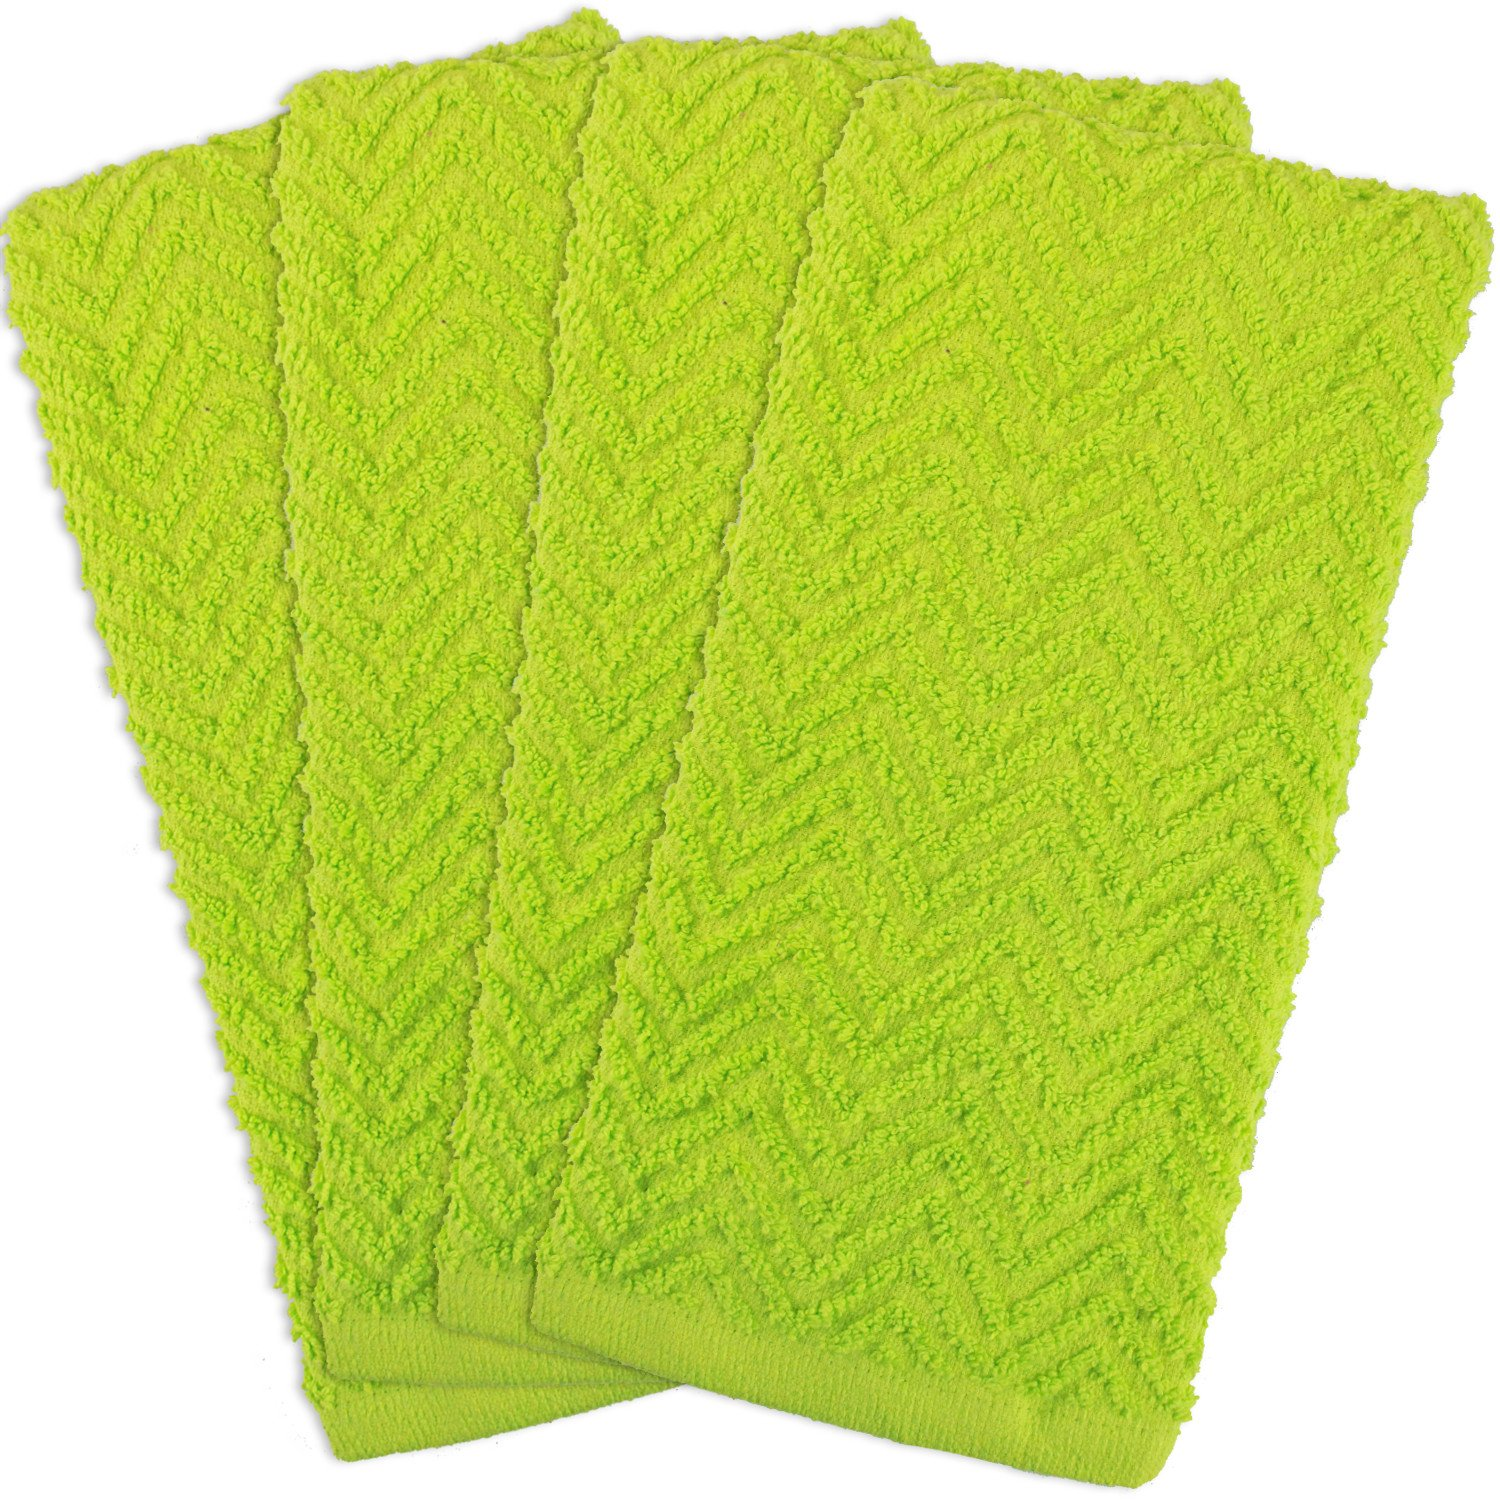 DII Cotton Zig Zag Weave Dish Clothes, 12 x 12 Set of 6, Heavy Duty Kitchen Bar Mop for Drying & Cleaning-Neon Lime Green CAMZ34973